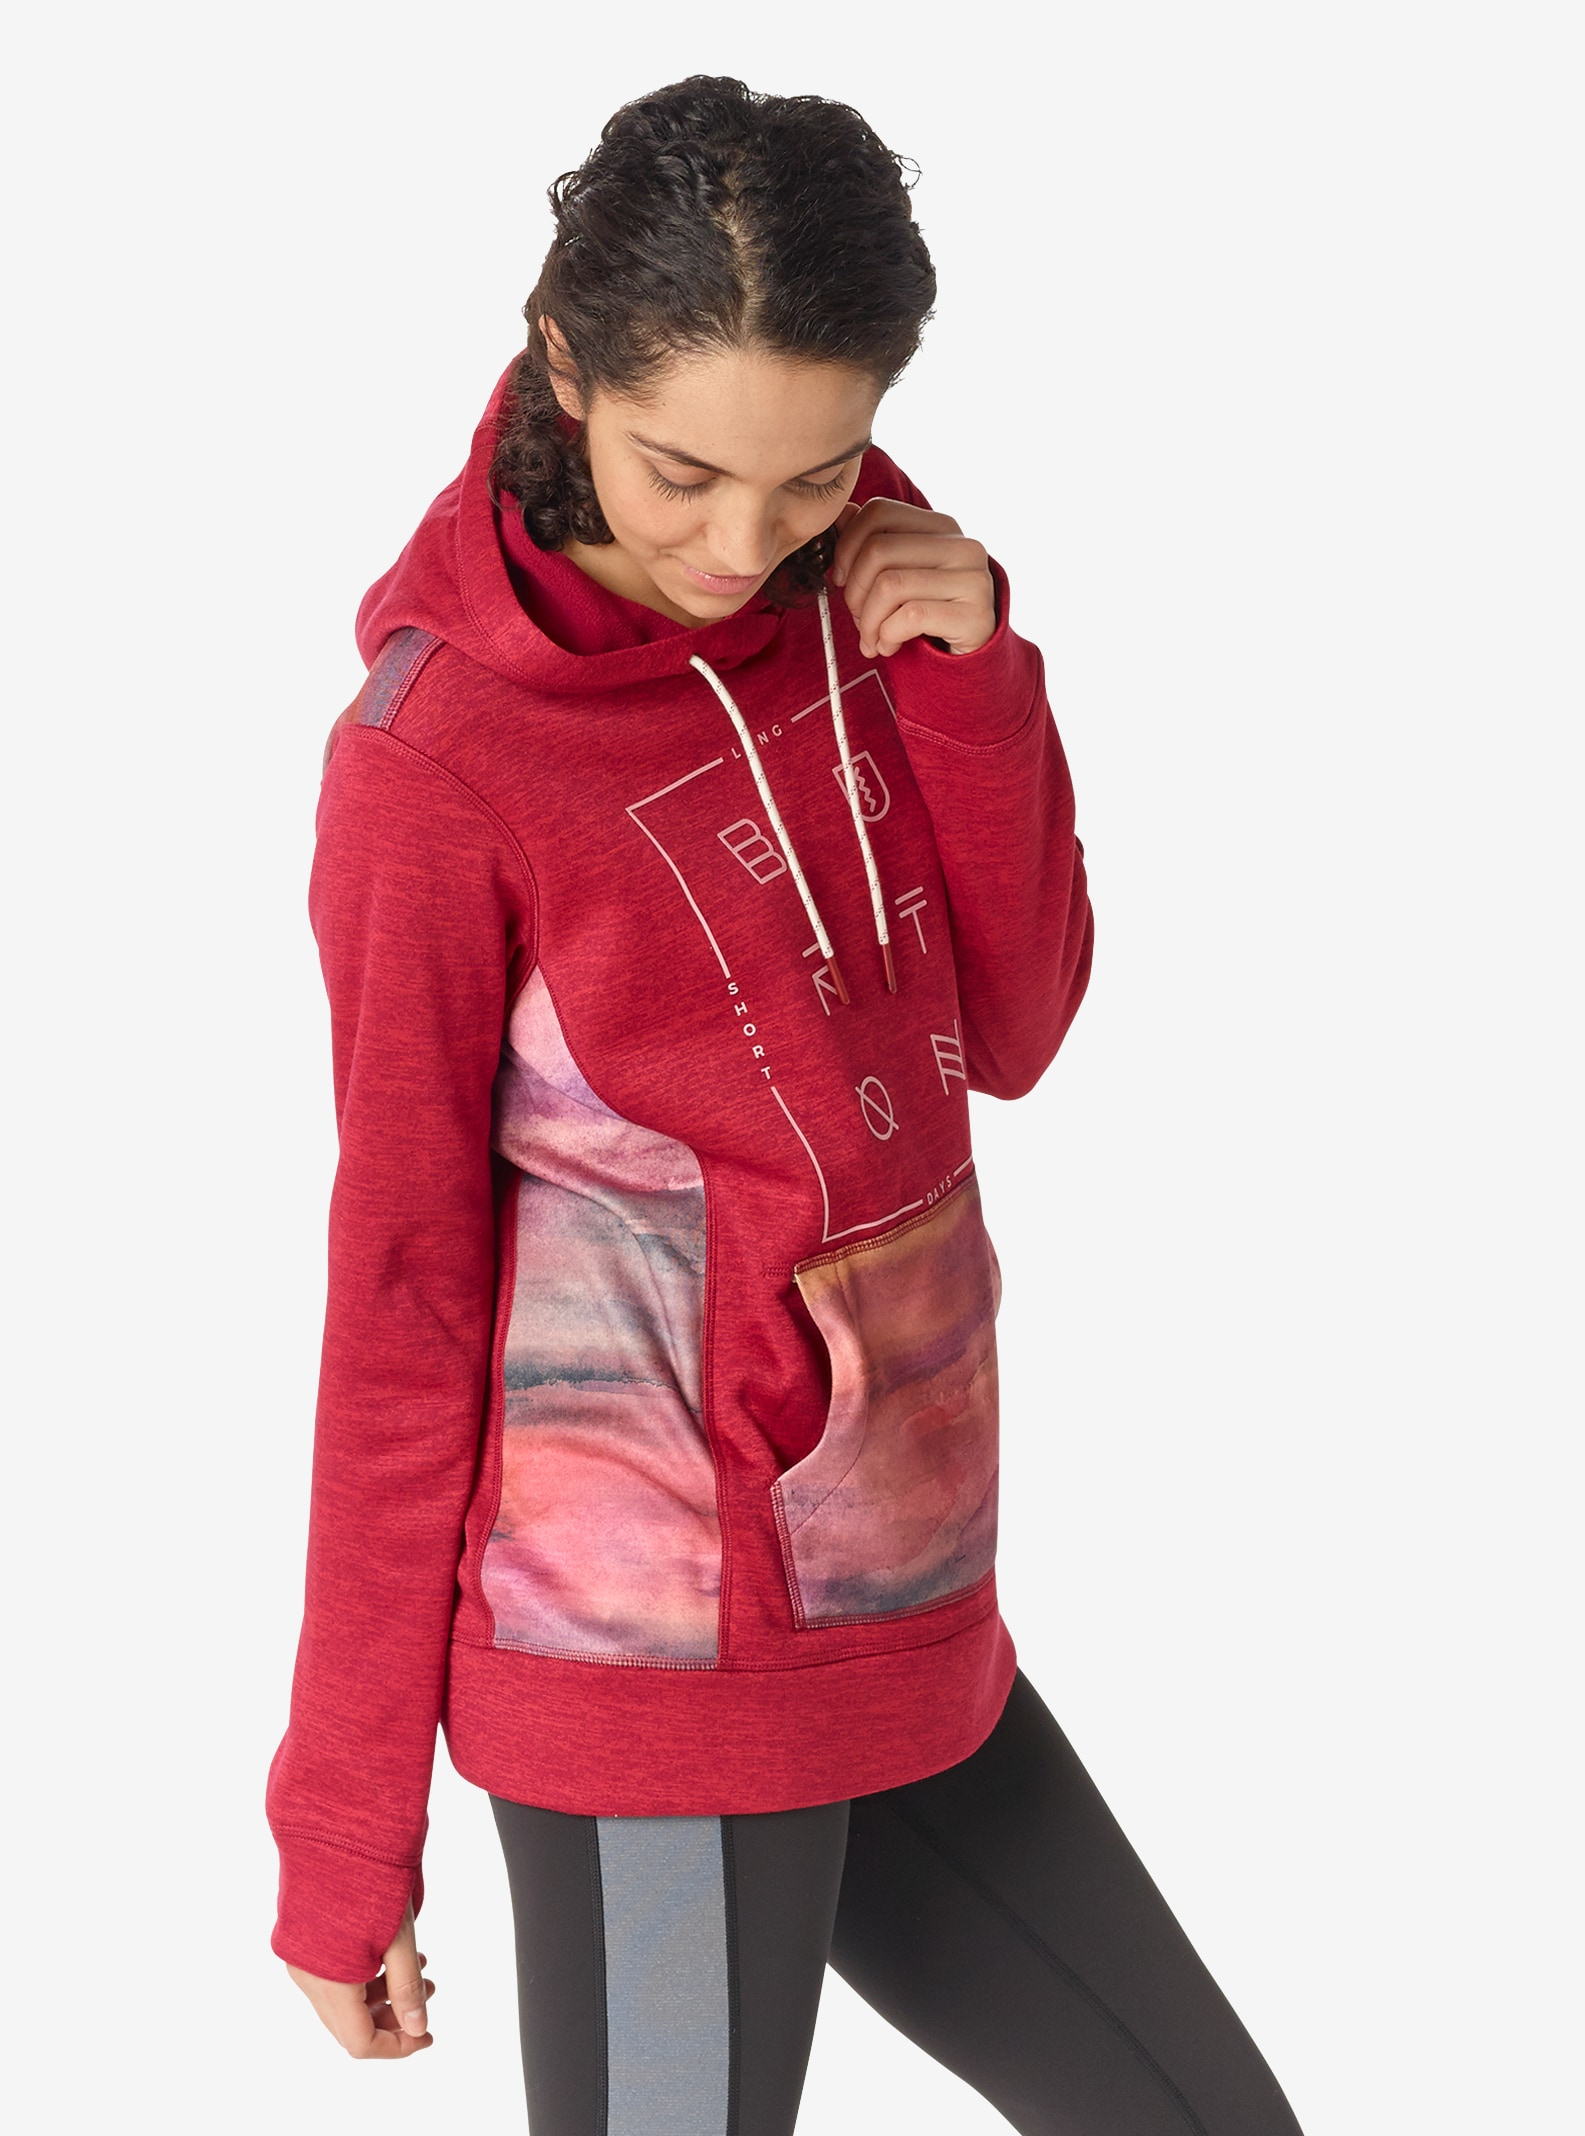 Women's Burton Quartz Pullover shown in Anemone Heather